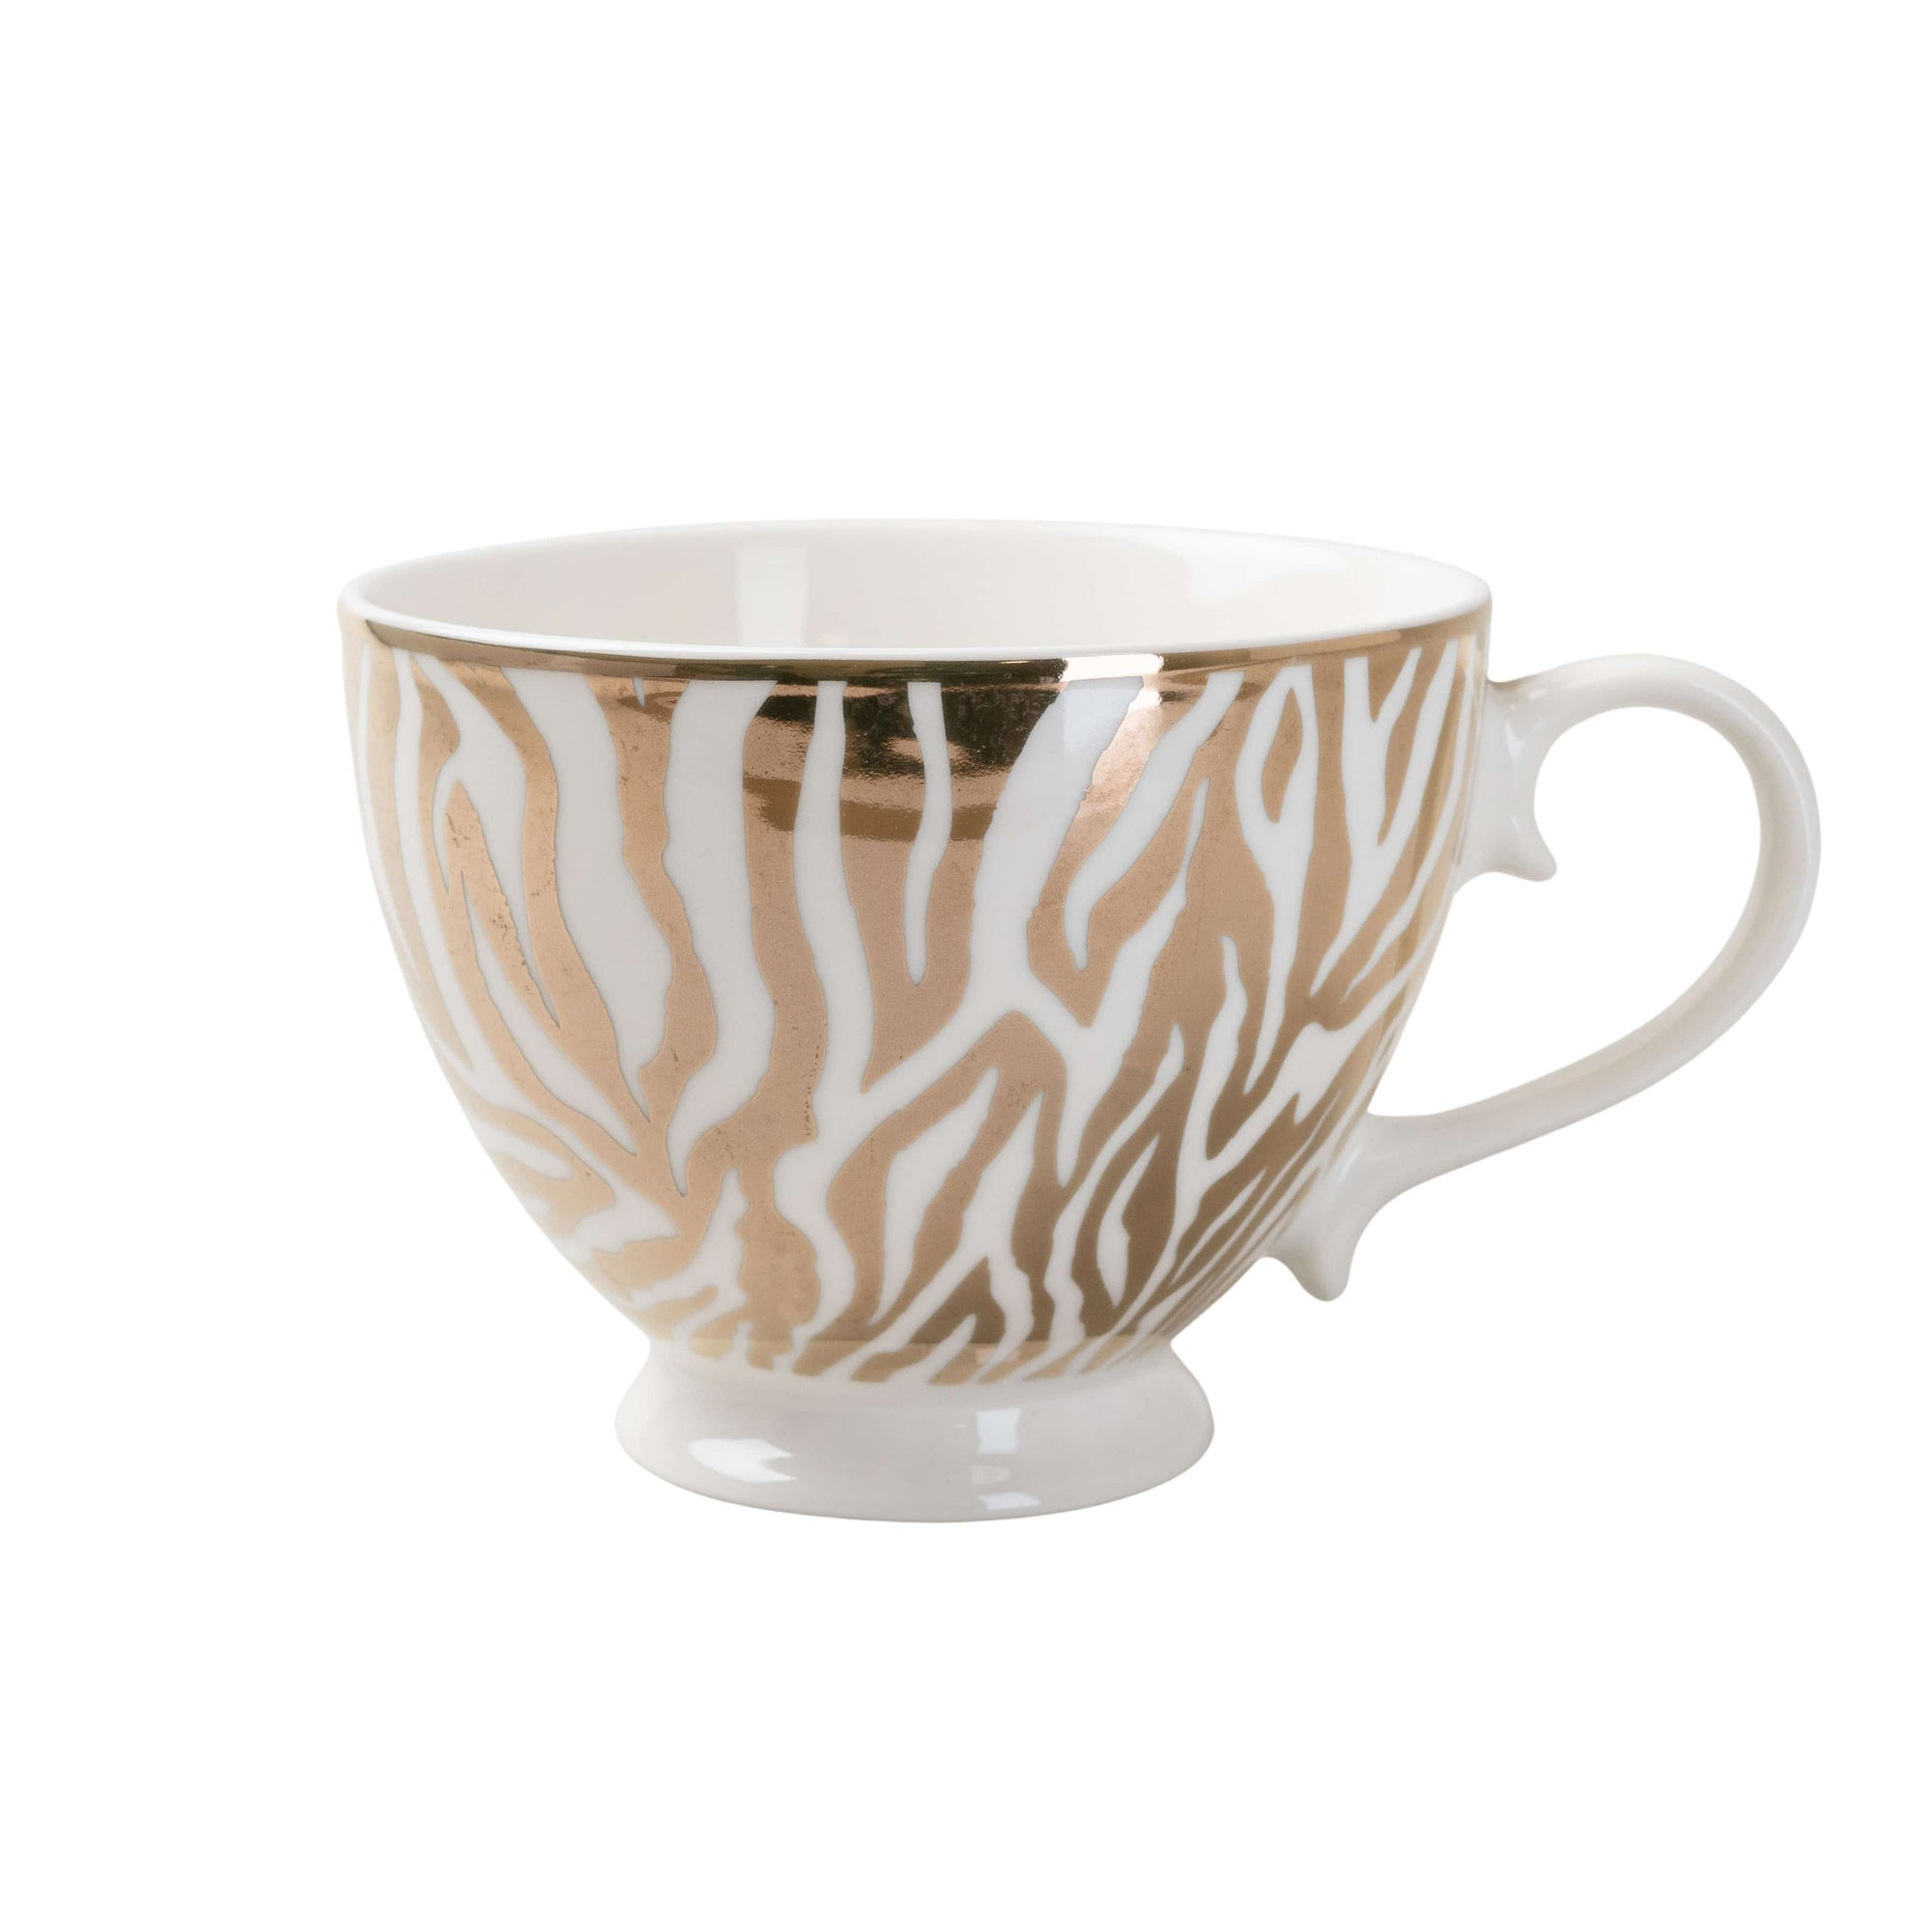 Candlelight Home Mug Animal Luxe Footed Mug Zebra Print Gold 6PK